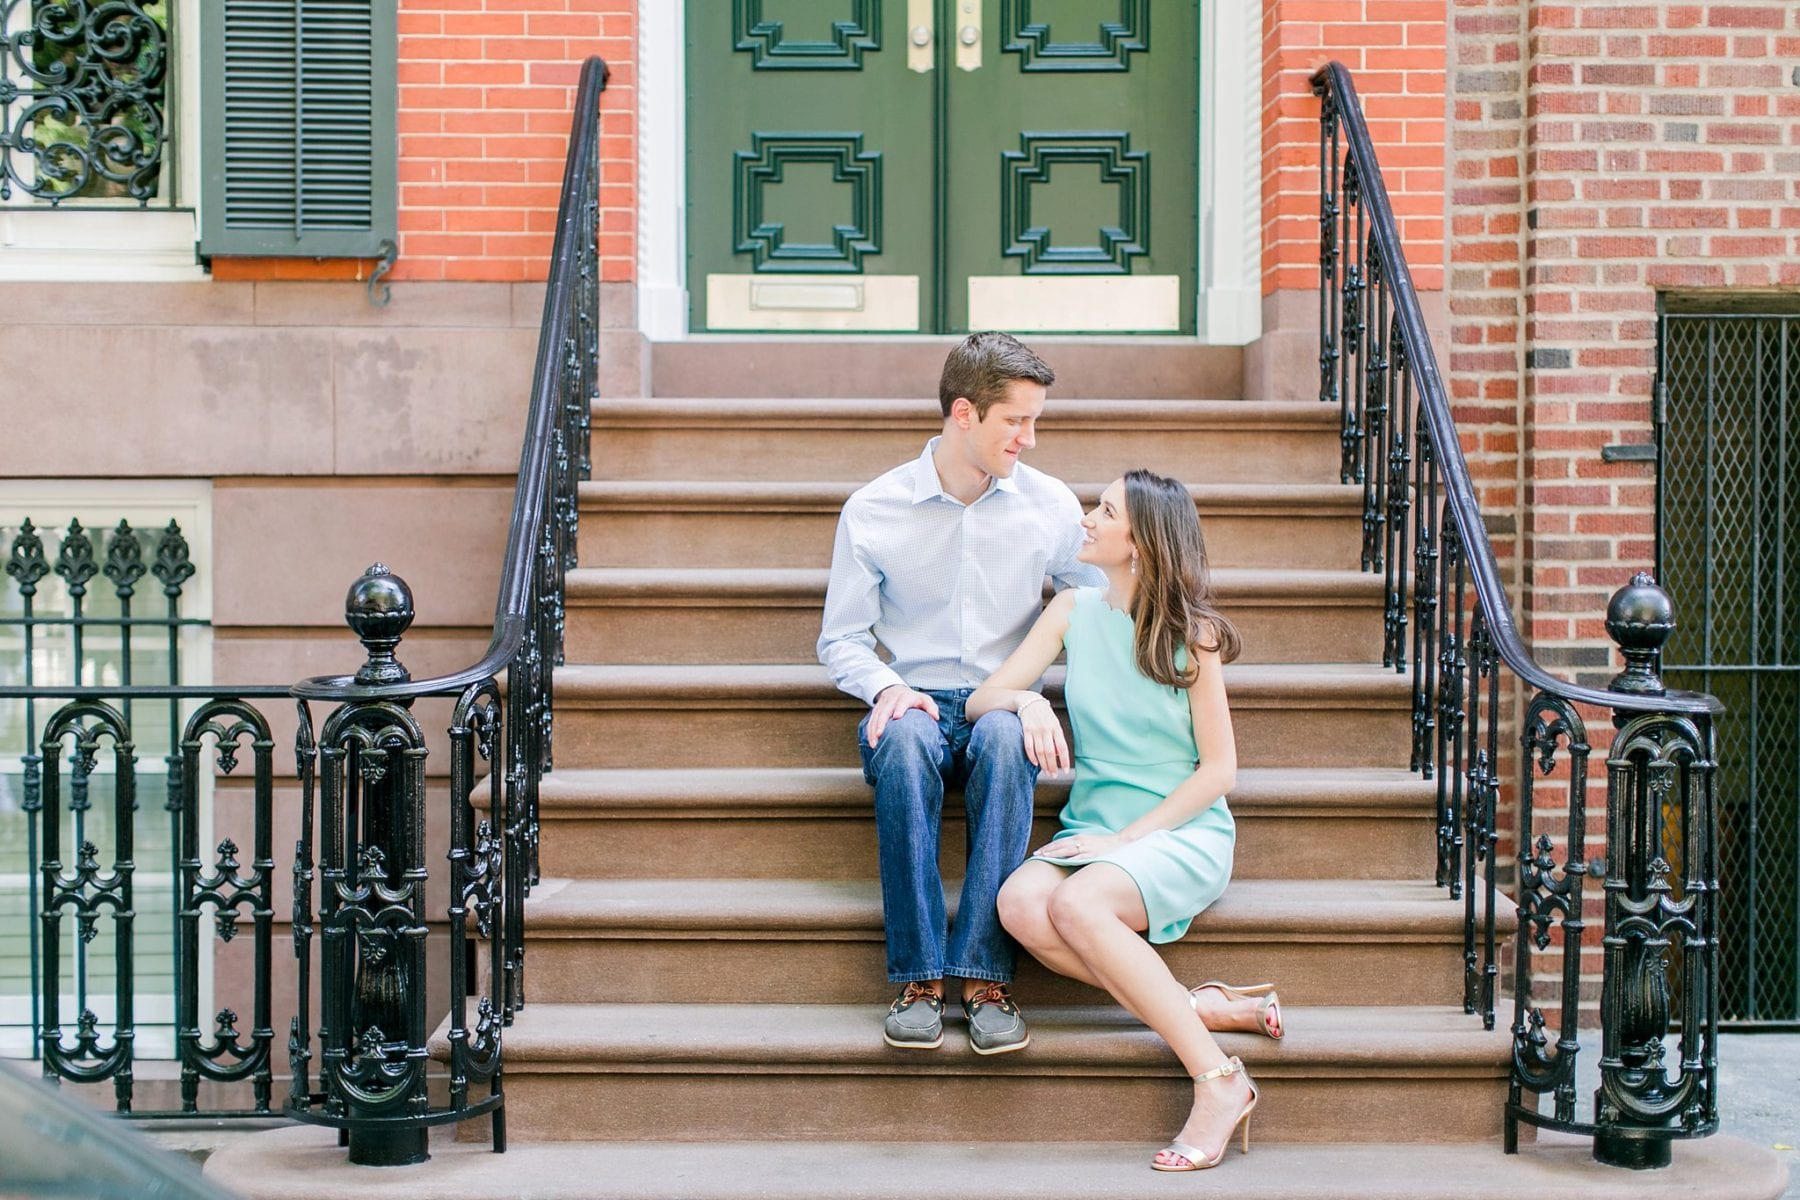 West Village Central Park Engagement Photos NYC Wedding Photographer Megan Kelsey Photography-31.jpg